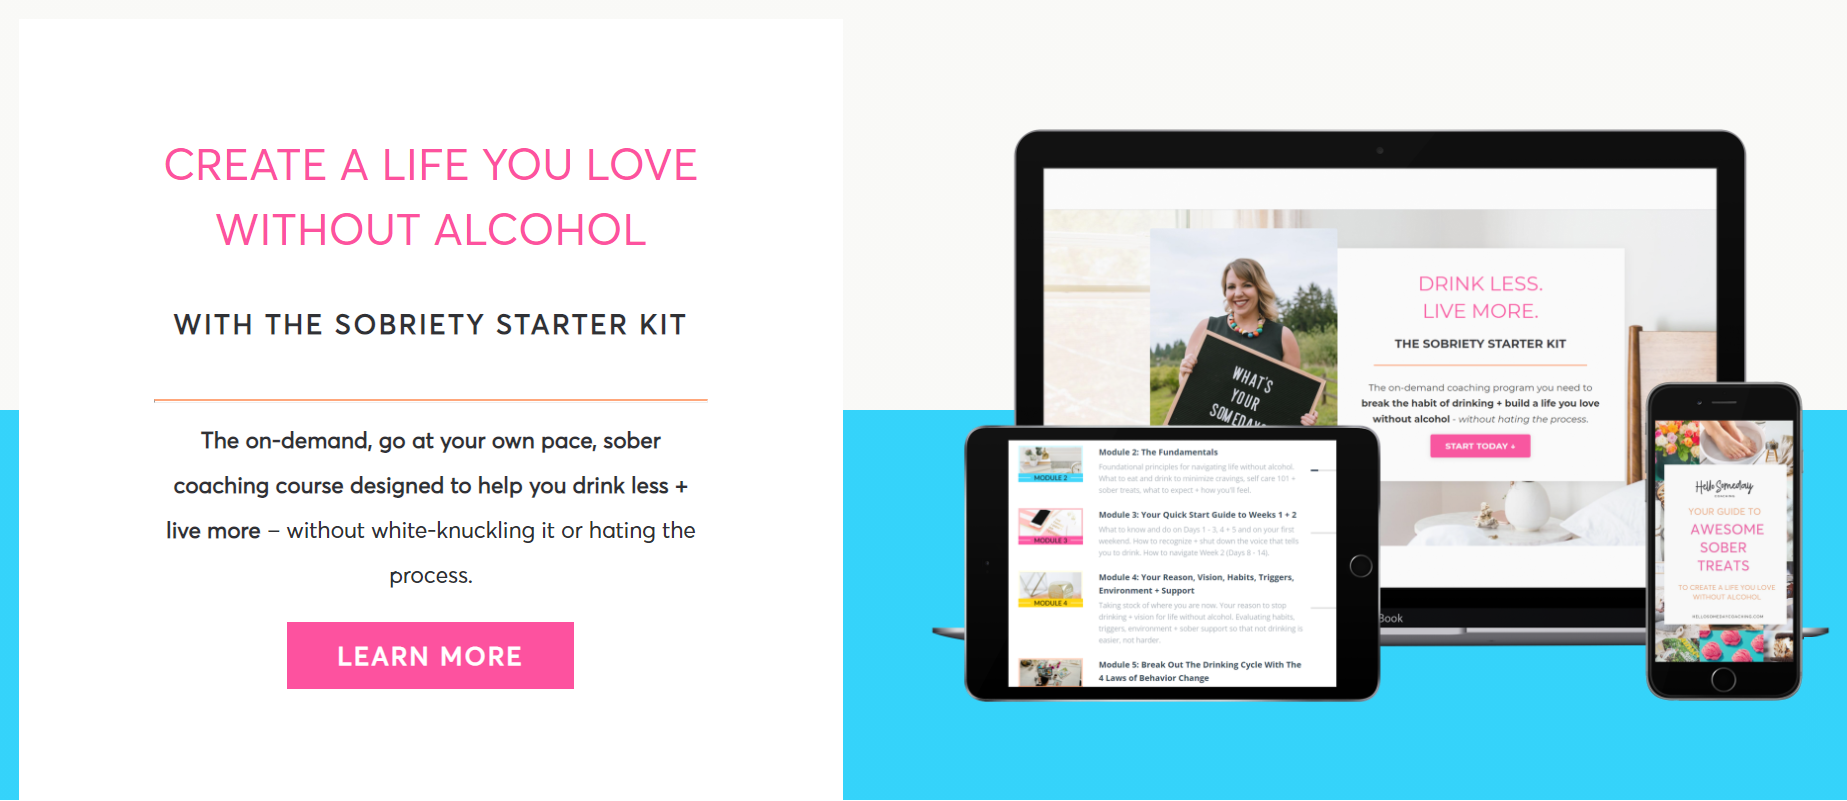 Escape the mom wine culture and stop drinking with The Sobriety Starter Kit course